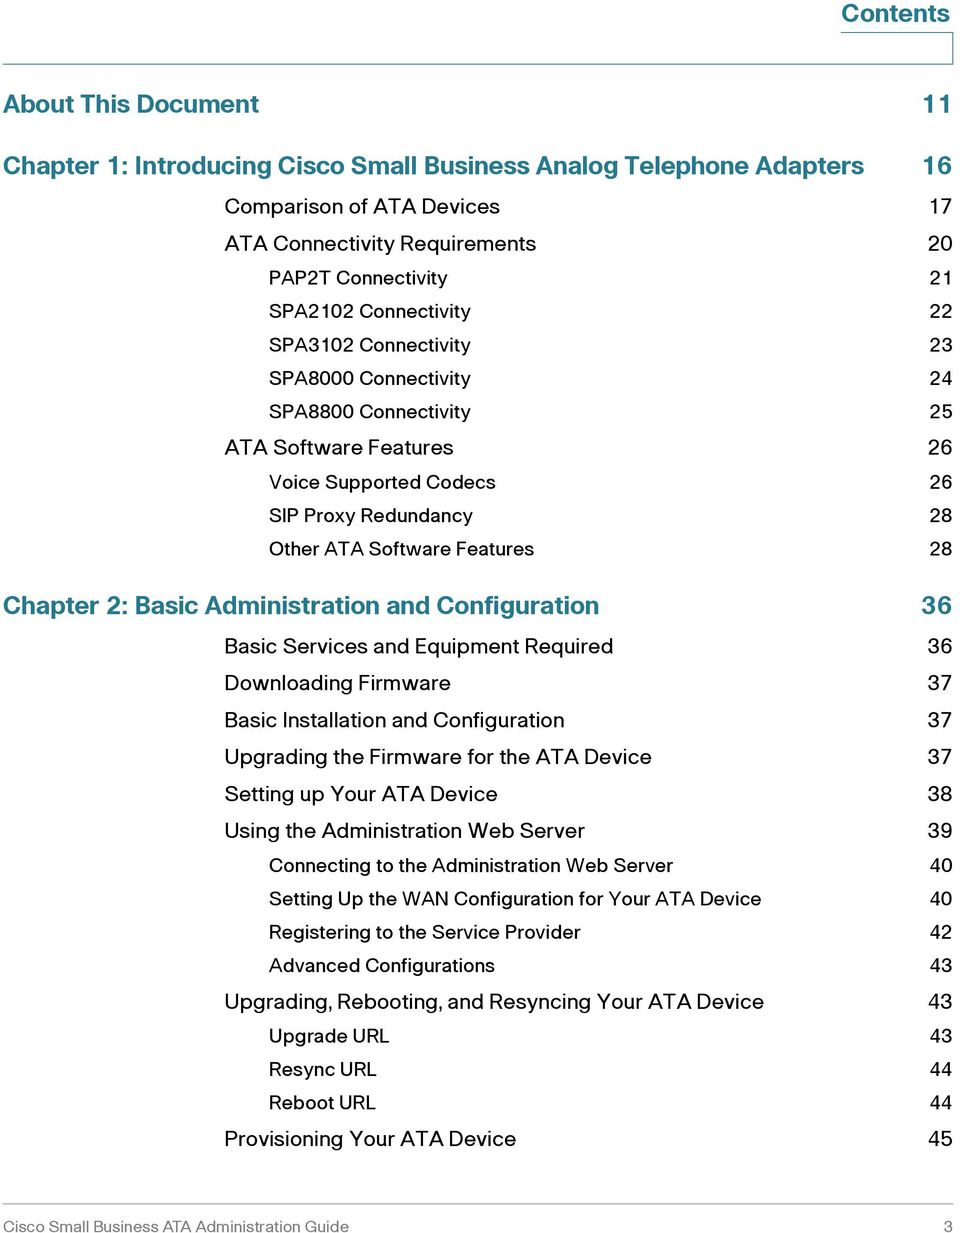 Chapter 2: Basic Administration and Configuration 36 Basic Services and Equipment Required 36 Downloading Firmware 37 Basic Installation and Configuration 37 Upgrading the Firmware for the ATA Device